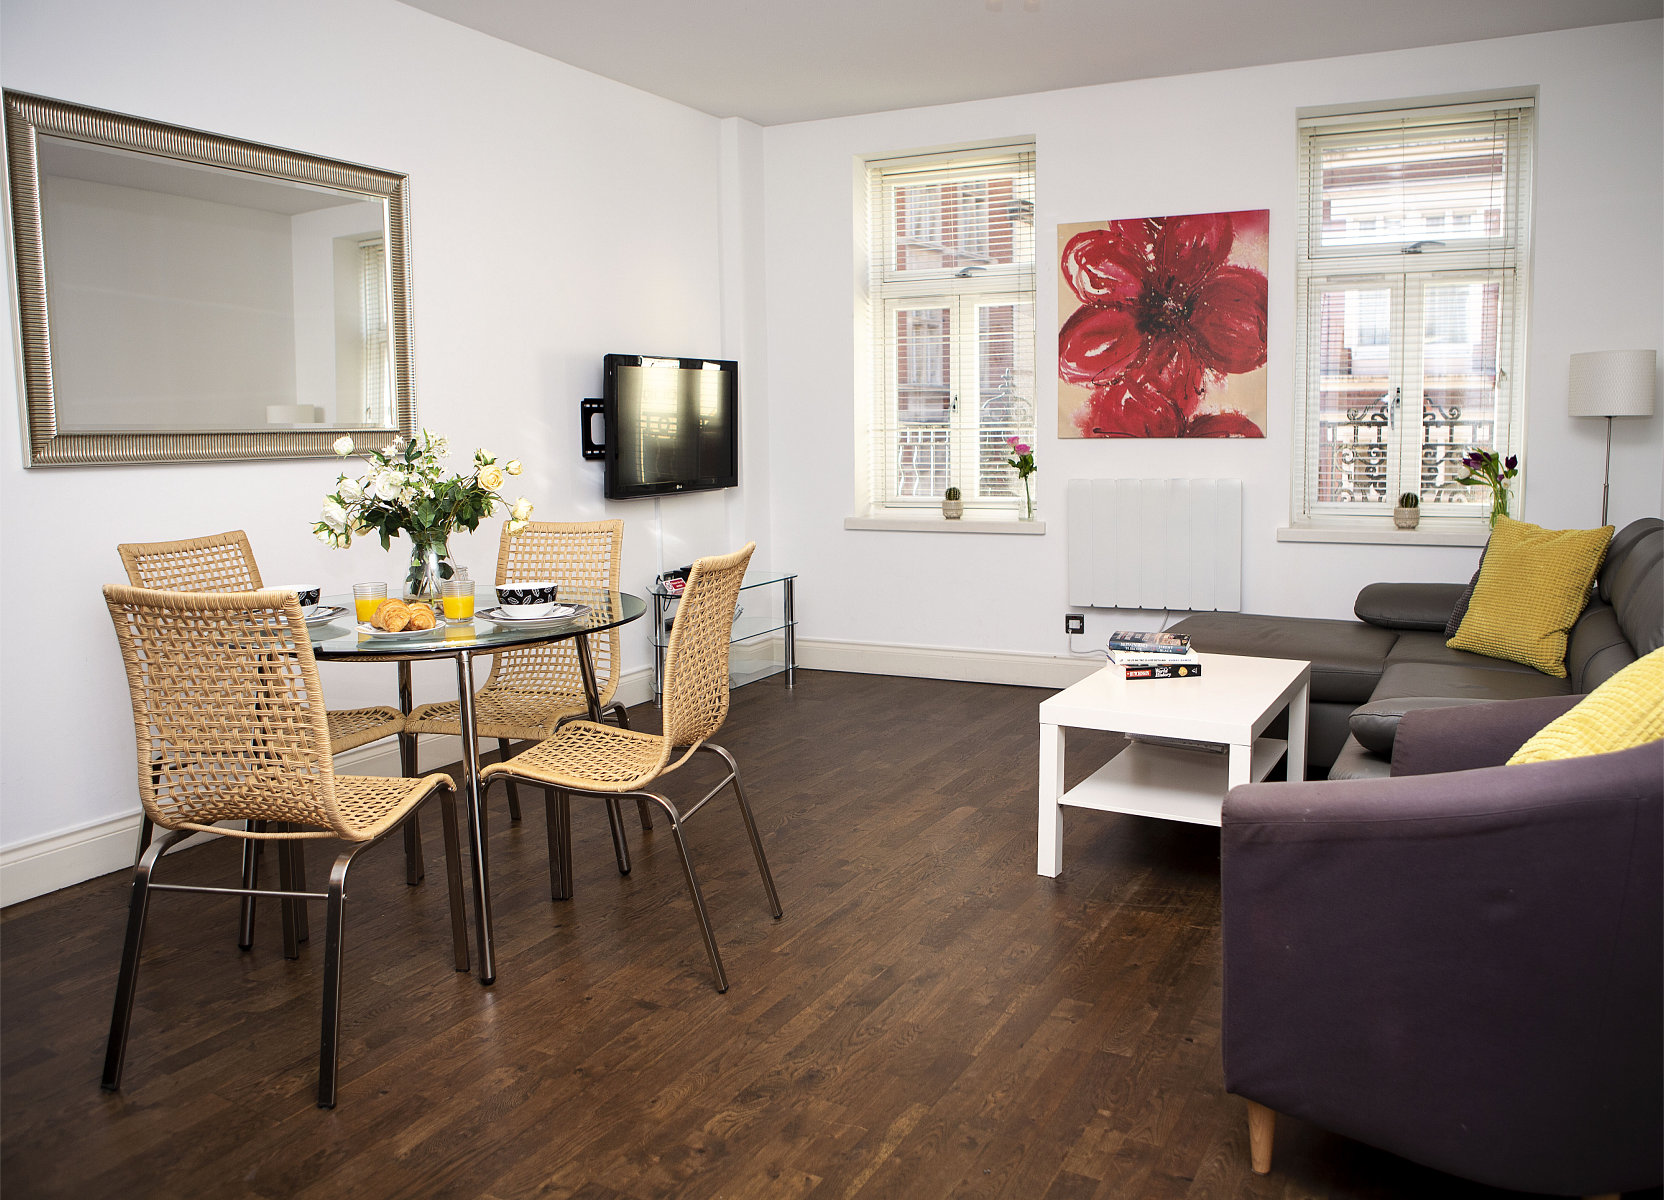 Trafalgar Square Apartments, Apartment 2, Covent Garden - Living Area